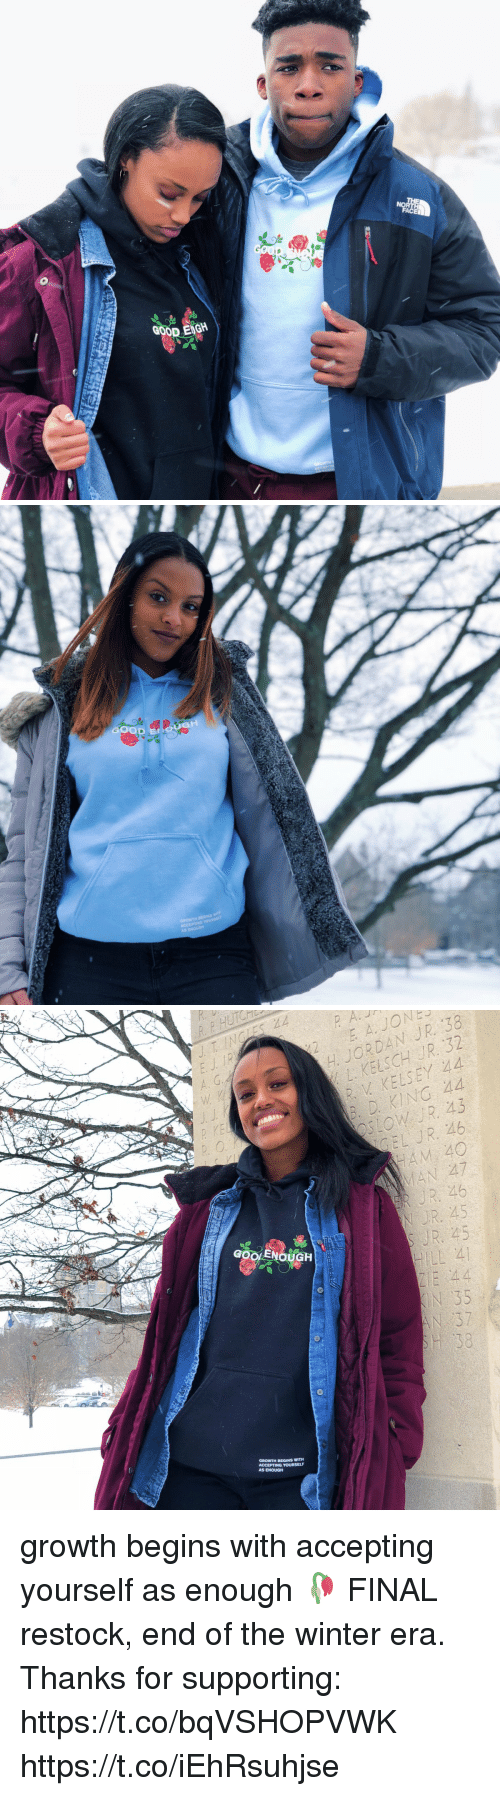 Funny, Winter, and Good: GOOD ENGH   P HUTCH  E I  A. G.d  H JORDANJR 38  R V KELSEY 44  B. D KING 44  247  GOOLENOUGH  LL 4  GROWTH BEGINS WITH  AS ENOUGH growth begins with accepting yourself as enough 🥀  FINAL restock, end of the winter era. Thanks for supporting: https://t.co/bqVSHOPVWK https://t.co/iEhRsuhjse